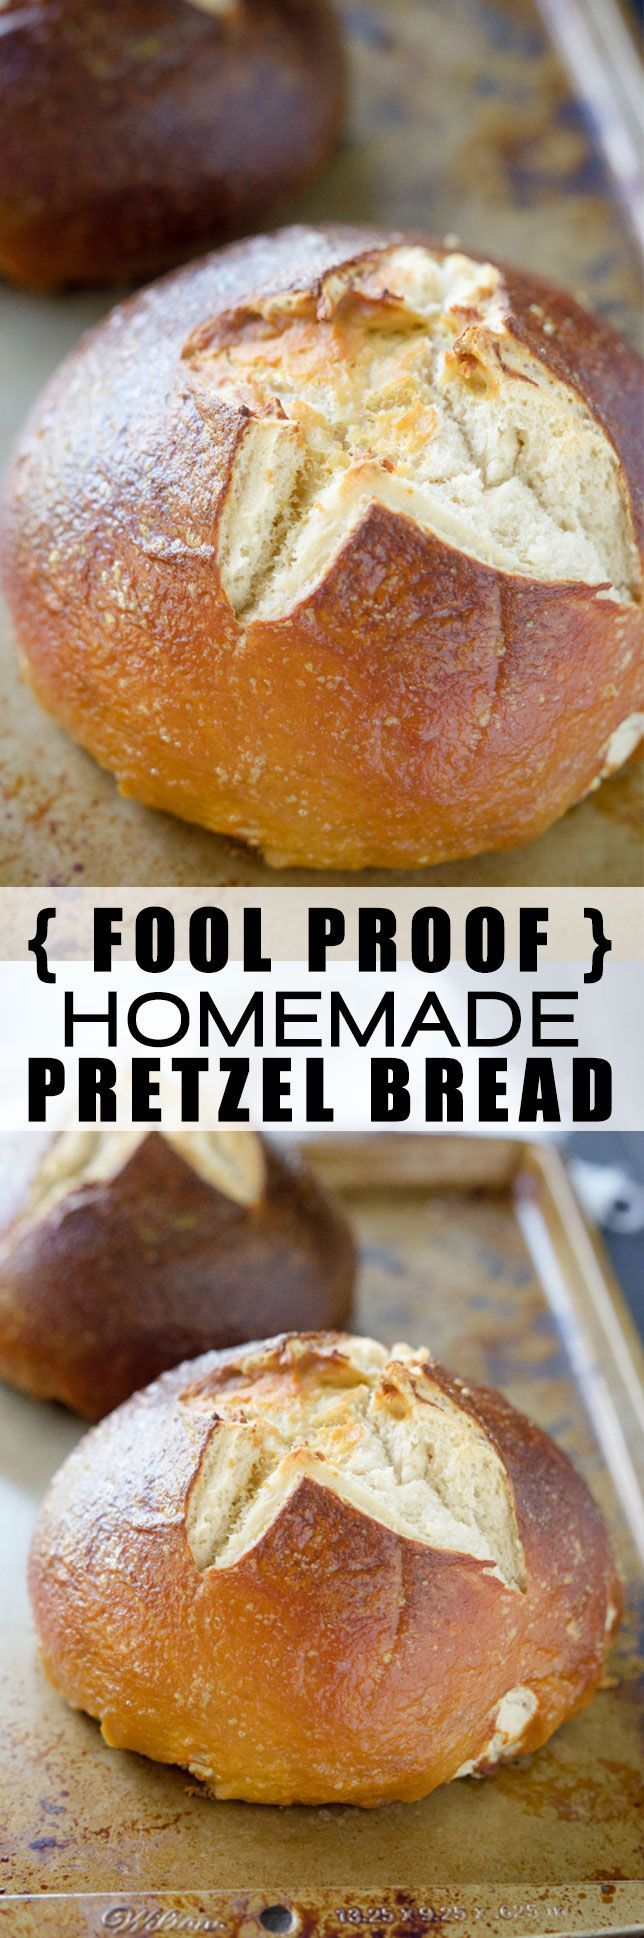 Homemade Pretzel Bread Recipes | Baking, Snacks, Cheese, Sandwich, Super Bowl, Easy, Ideas, Bowls, Loaf, Dip, Bites, Sliders, Appetizer, Rolls